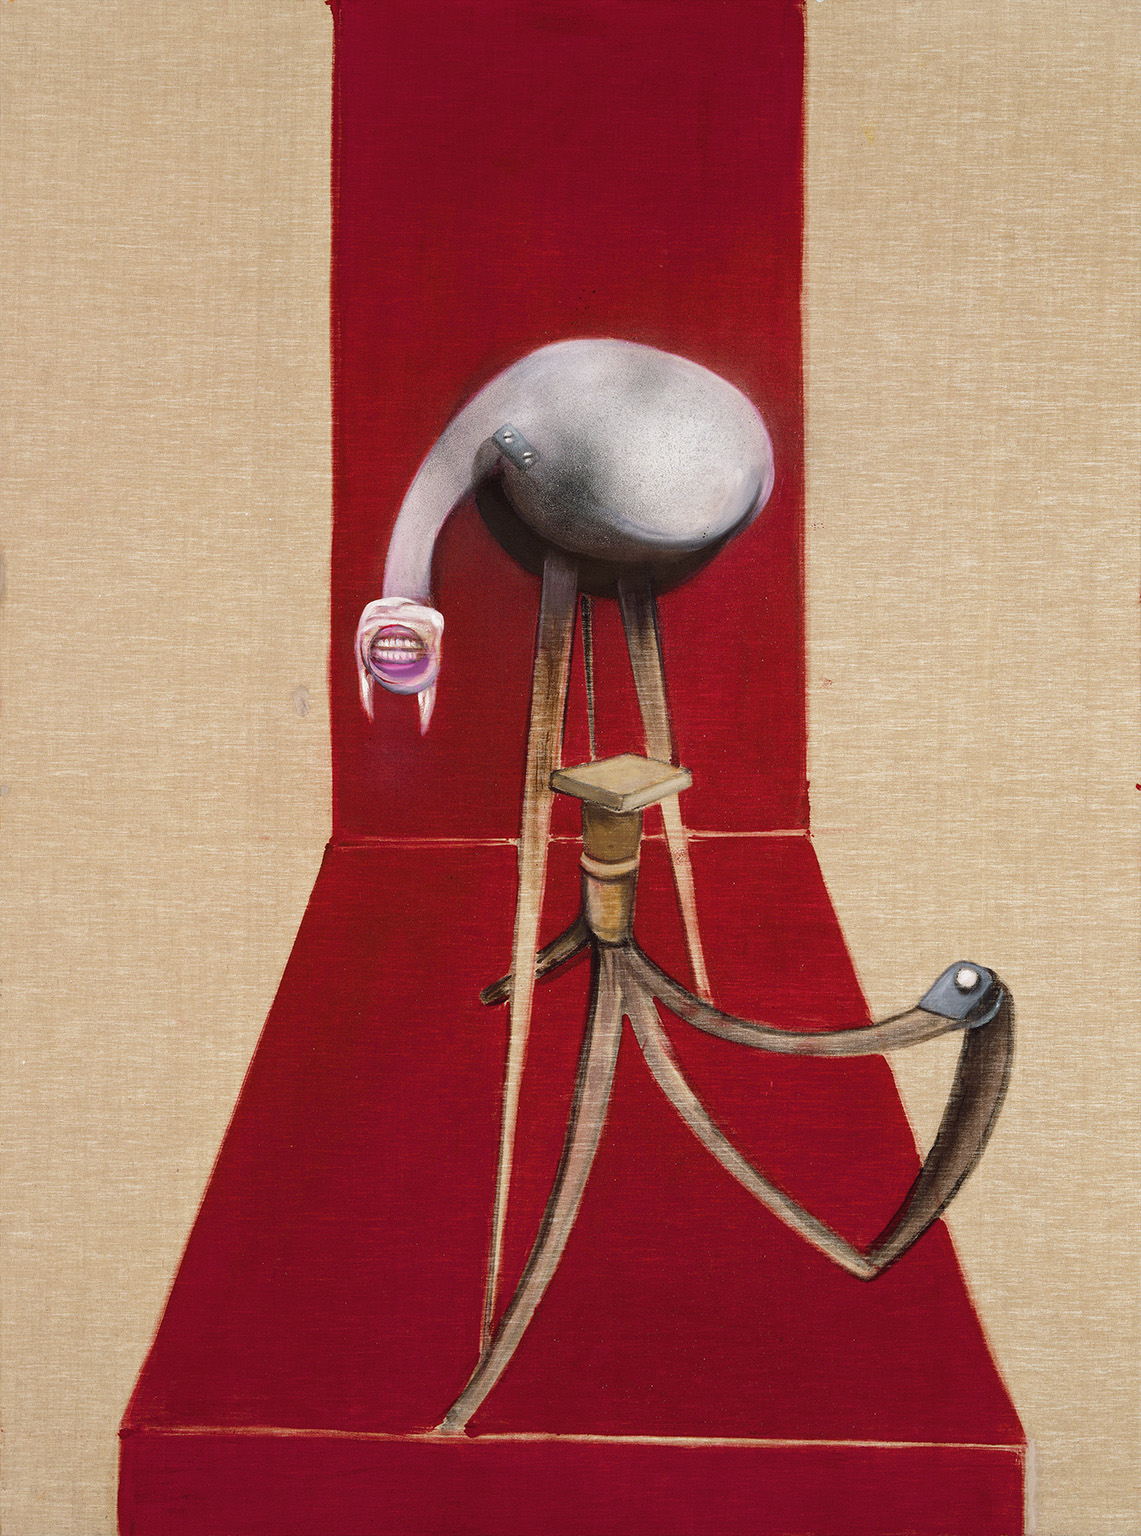 Francis Bacon, Second Version of Triptych 1944, 1988. Oil paint and acrylic paint on 3 canvases, 198 x 147.5 cm (each). Tate: Presented by the artist 1991 © The Estate of Francis Bacon. All rights reserved, DACS/Artimage 2020. Photo: Prudence Cuming Associates Ltd